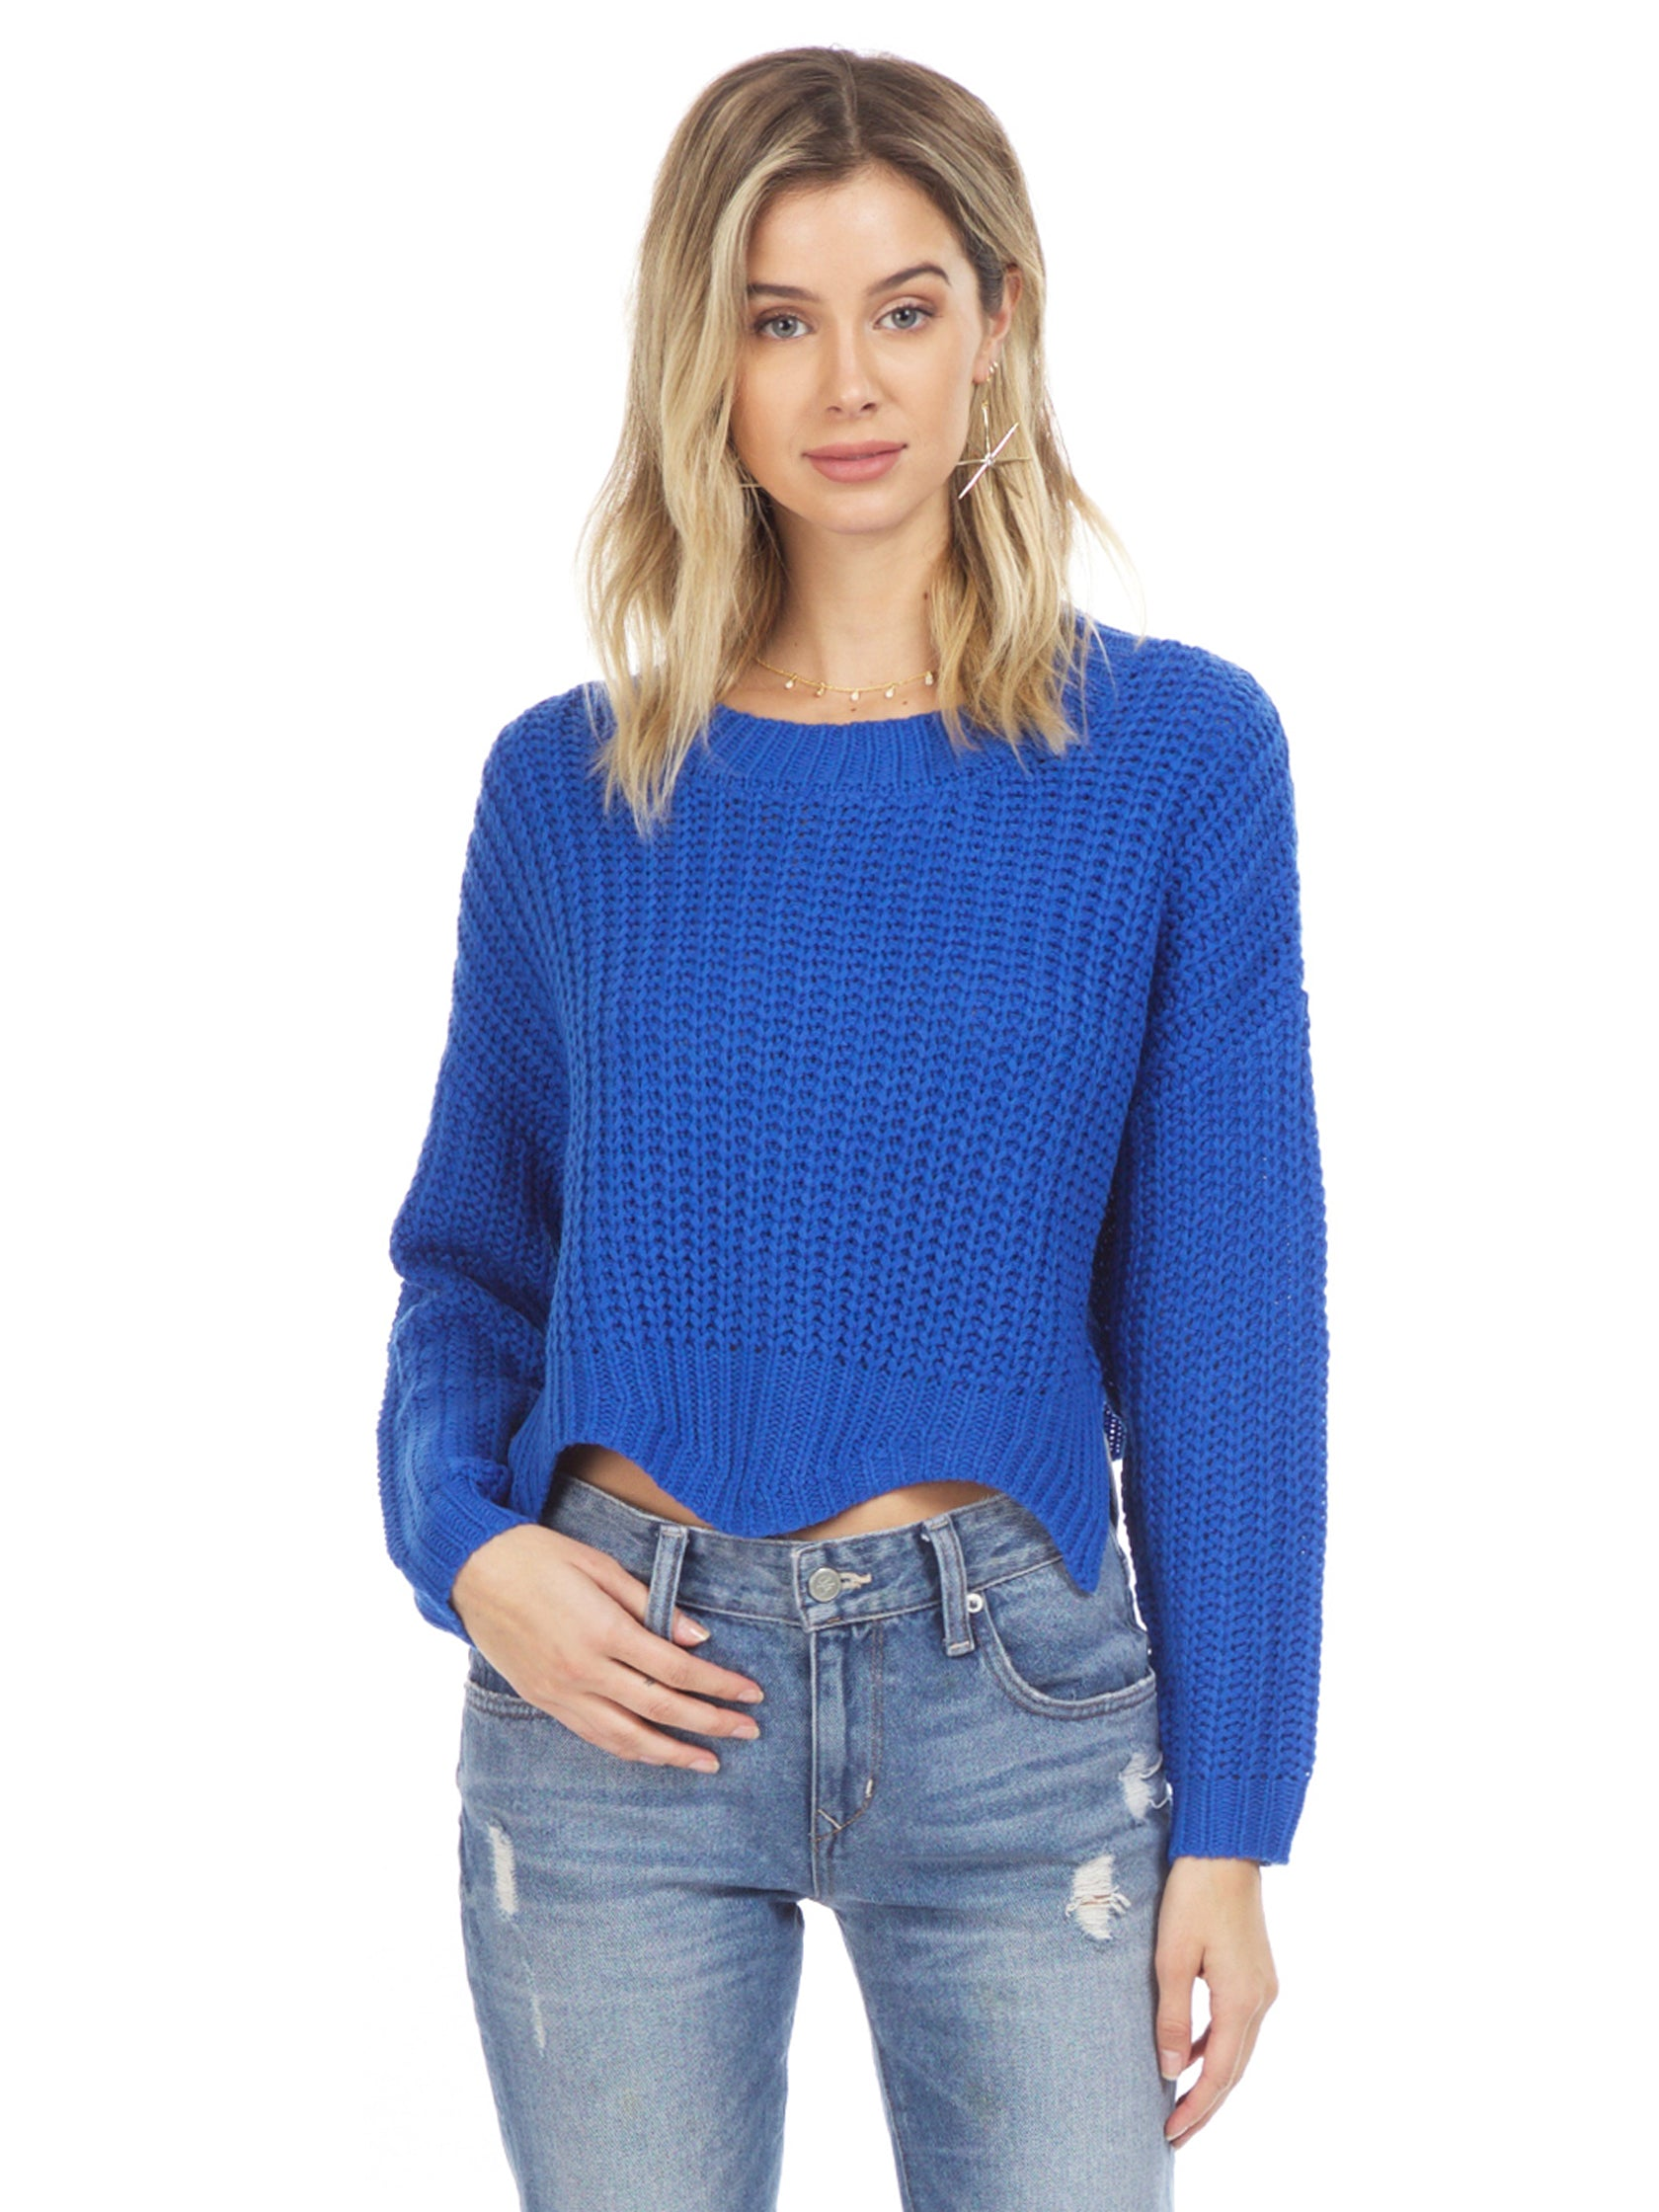 Woman wearing a sweater rental from Sadie & Sage called Scallop Hem Knit Sweater